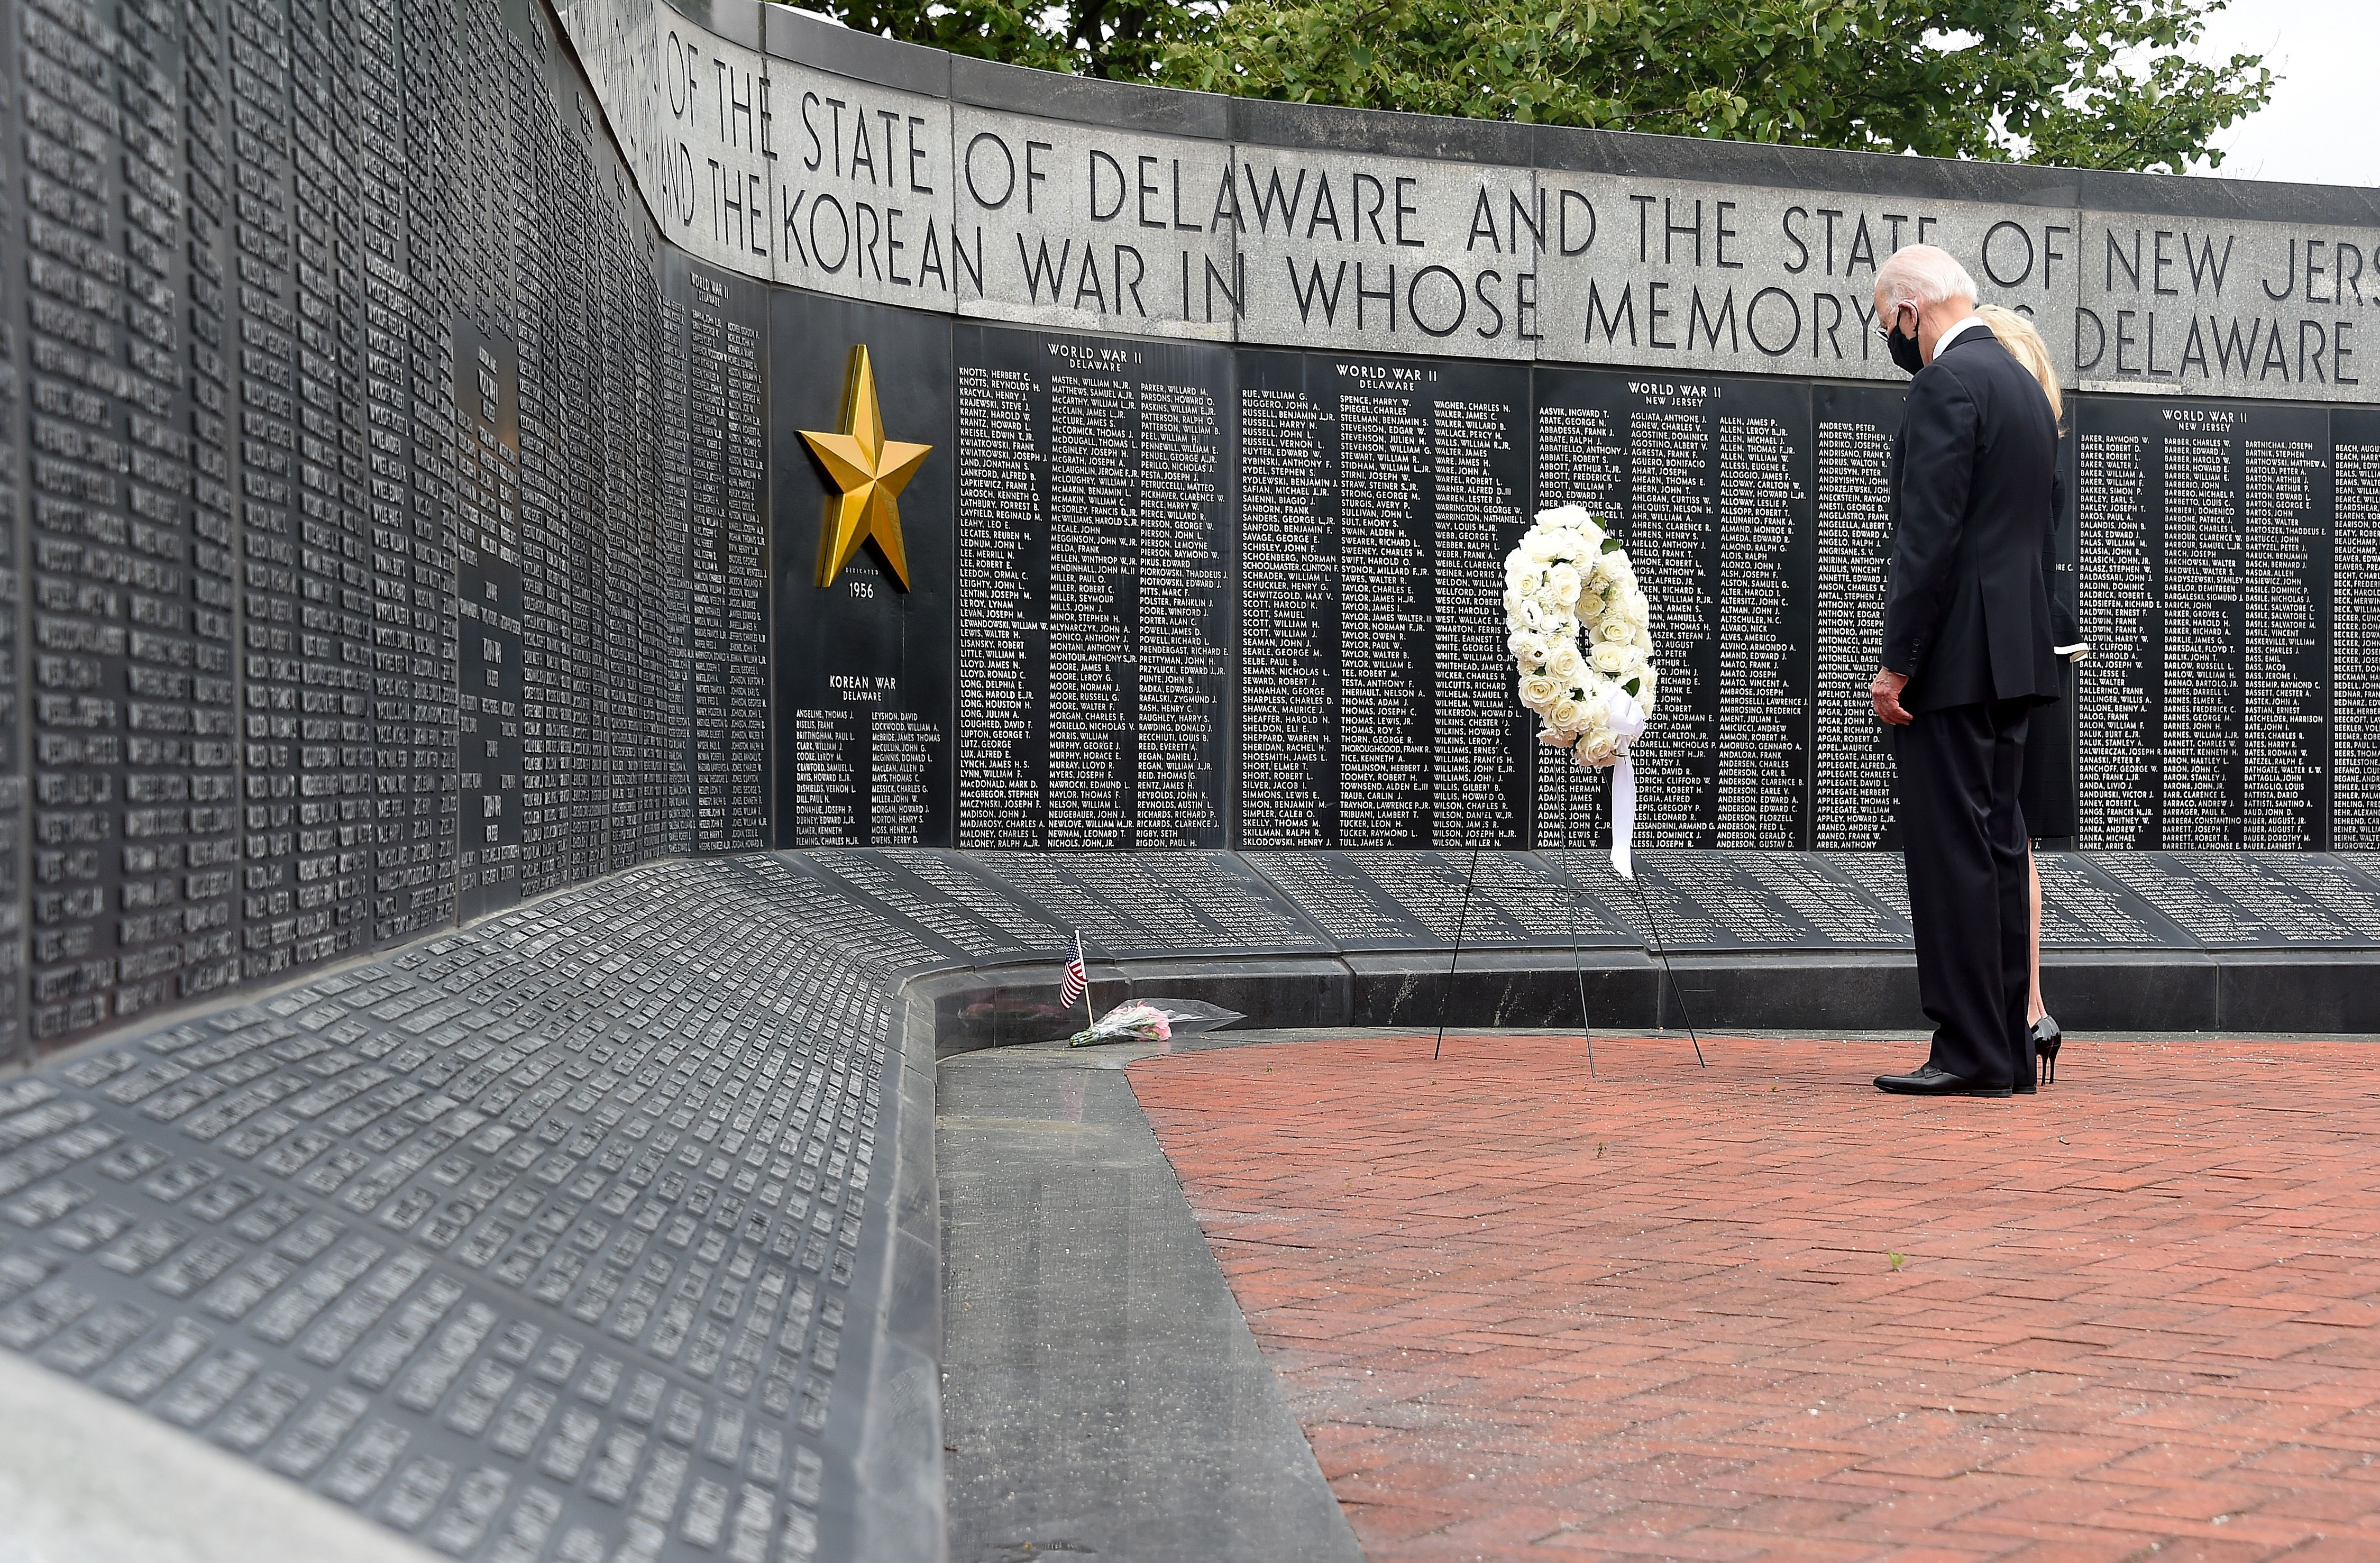 Democratic presidential candidate and former US Vice President Joe Biden and his wife Jill Biden, pay their respects to fallen service members on Memorial Day at Delaware Memorial Bridge Veteran's Memorial Park in Newcastle, Delaware, May 25, 2020. (Photo by Olivier DOULIERY / AFP) (Photo by OLIVIER DOULIERY/AFP via Getty Images)